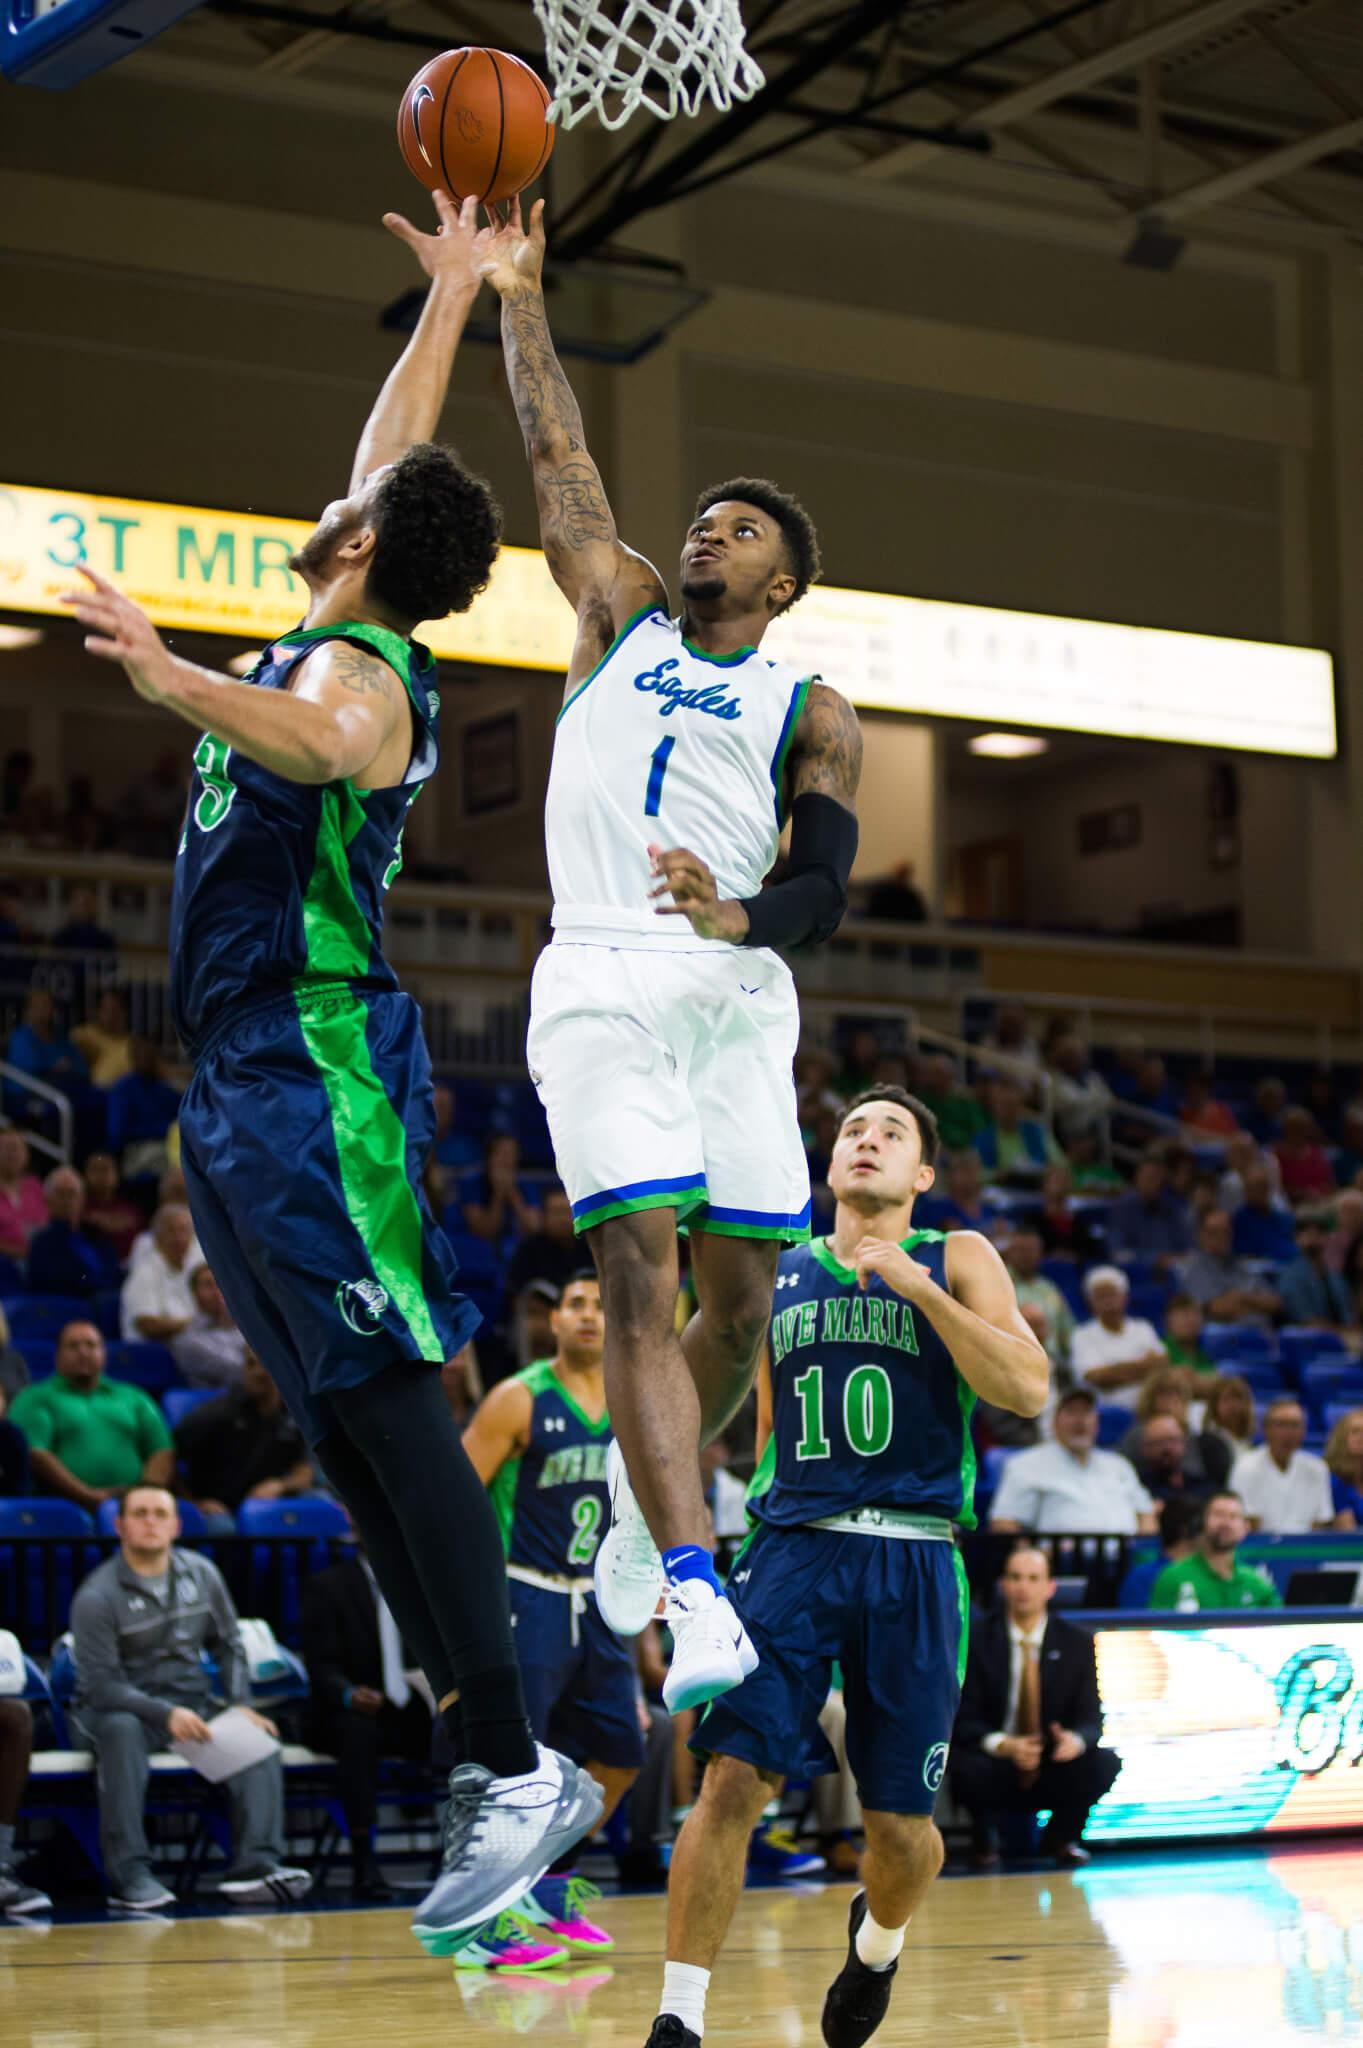 FGCU men's basketball set to face FAU after six-day game break